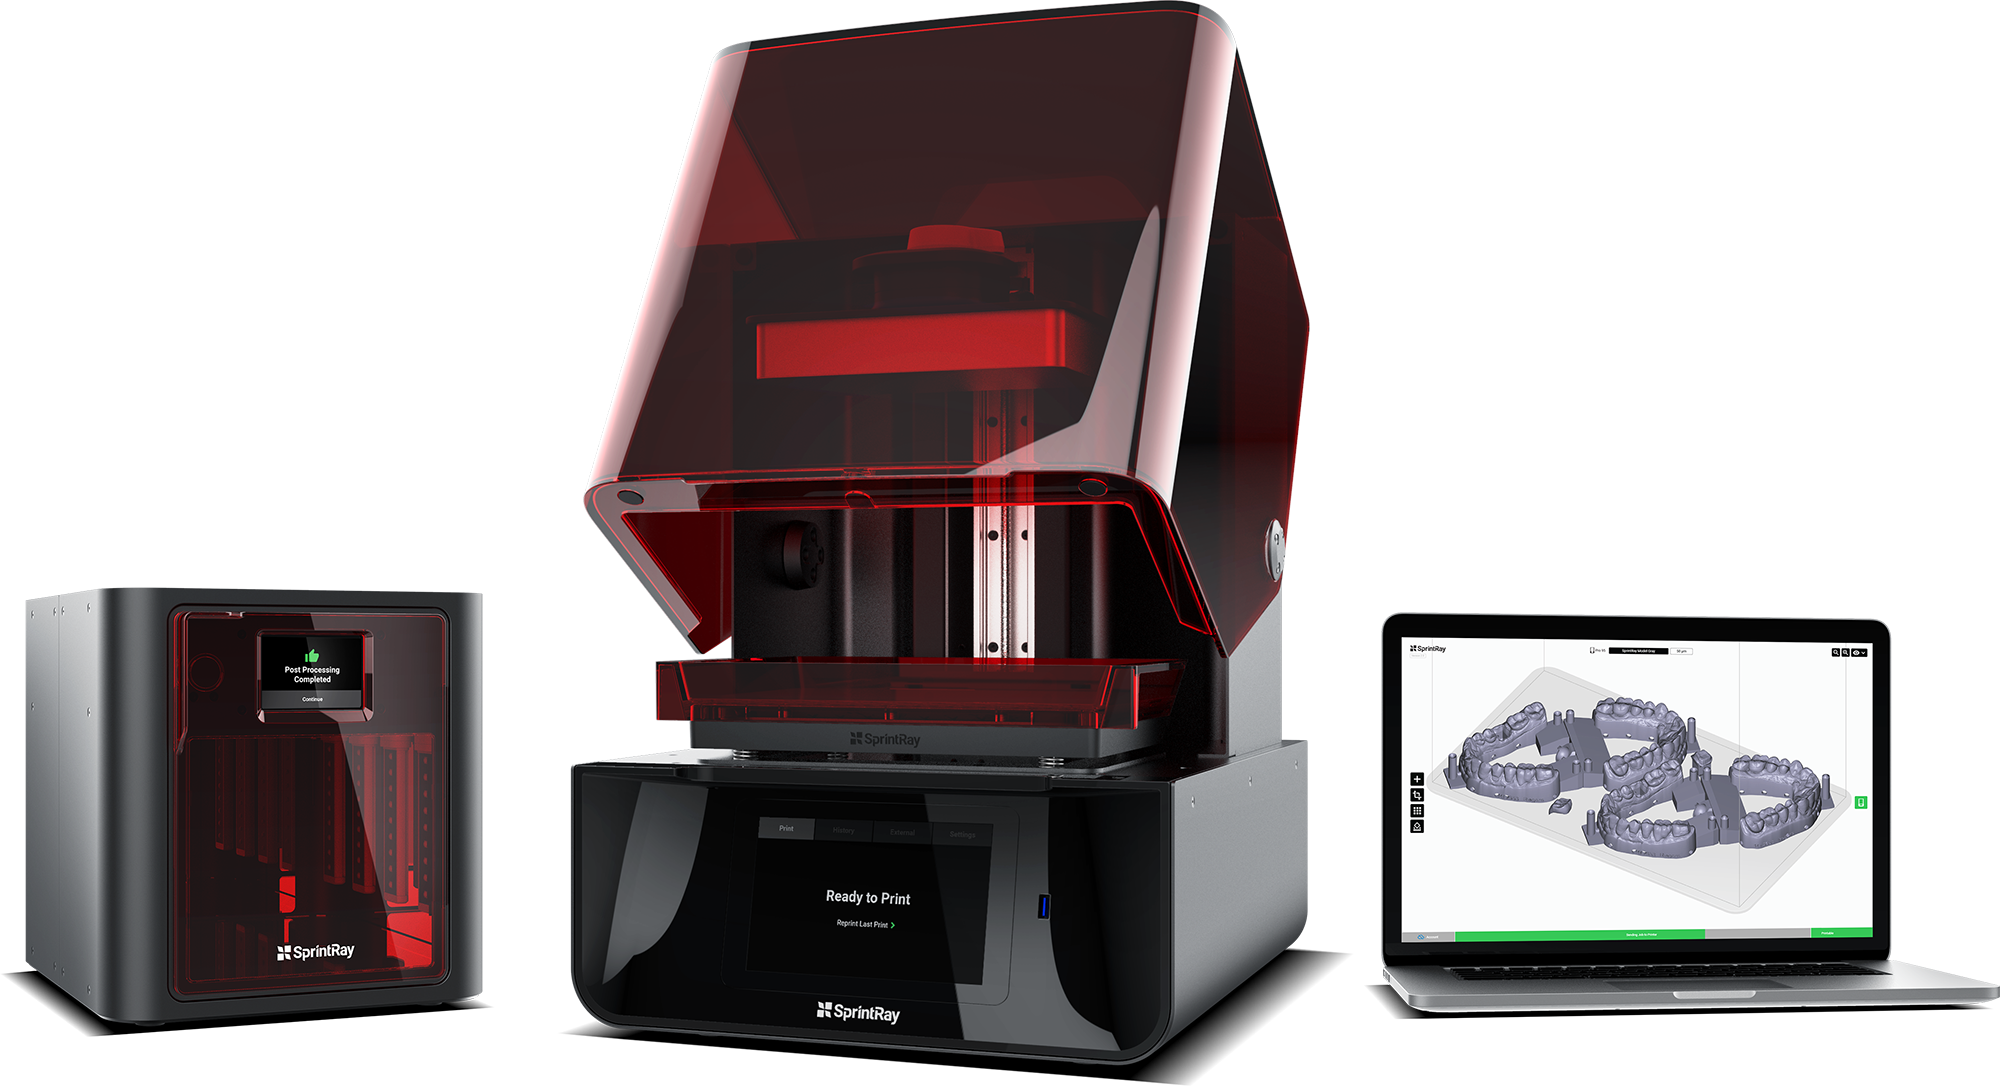 3D dentistry – SprintRay's MoonRay 3D Printer for dentists